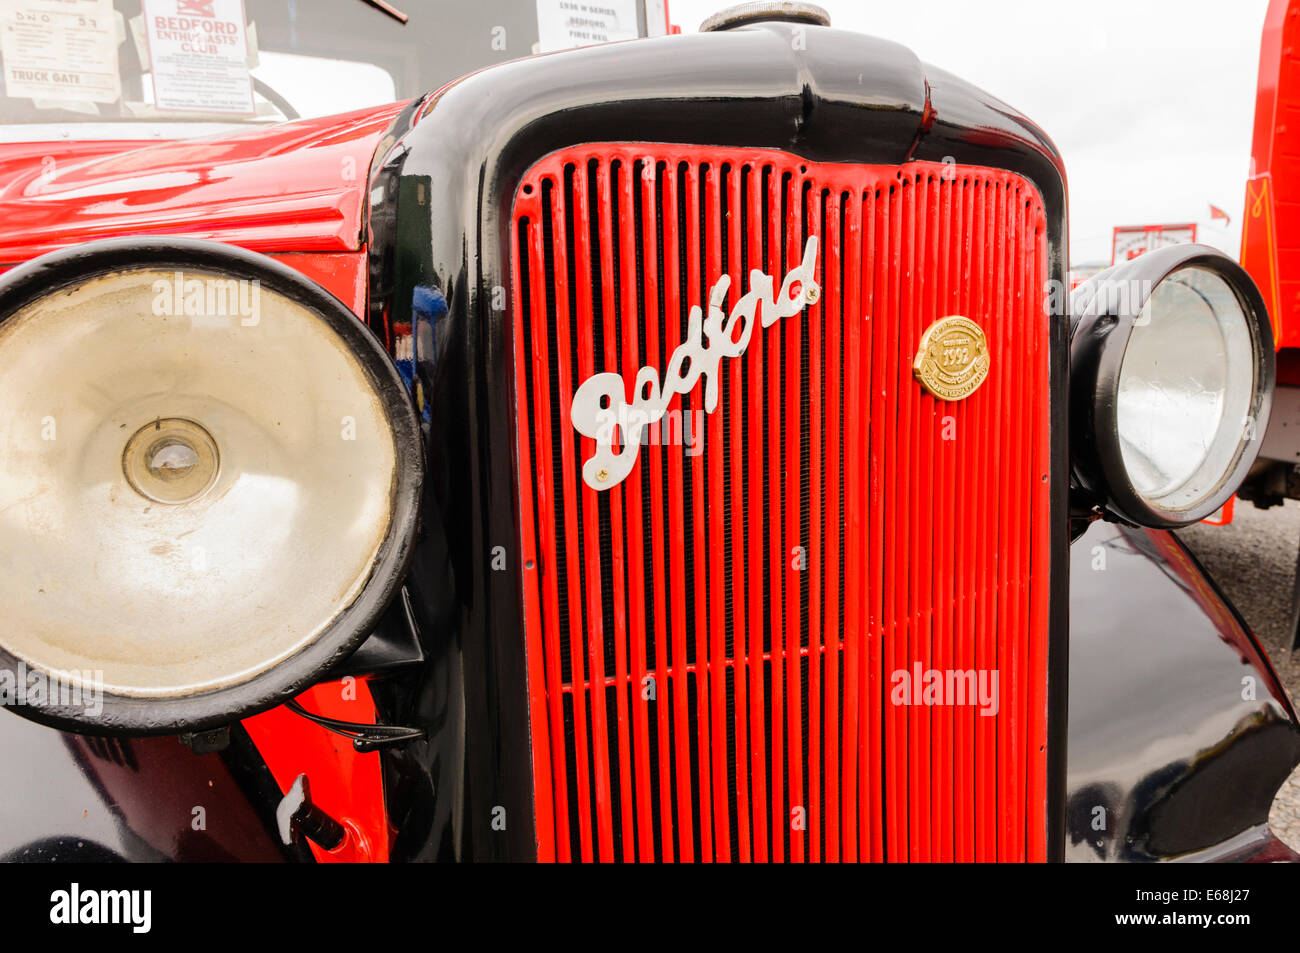 Grille and badge on an old Bedford lorry - Stock Image